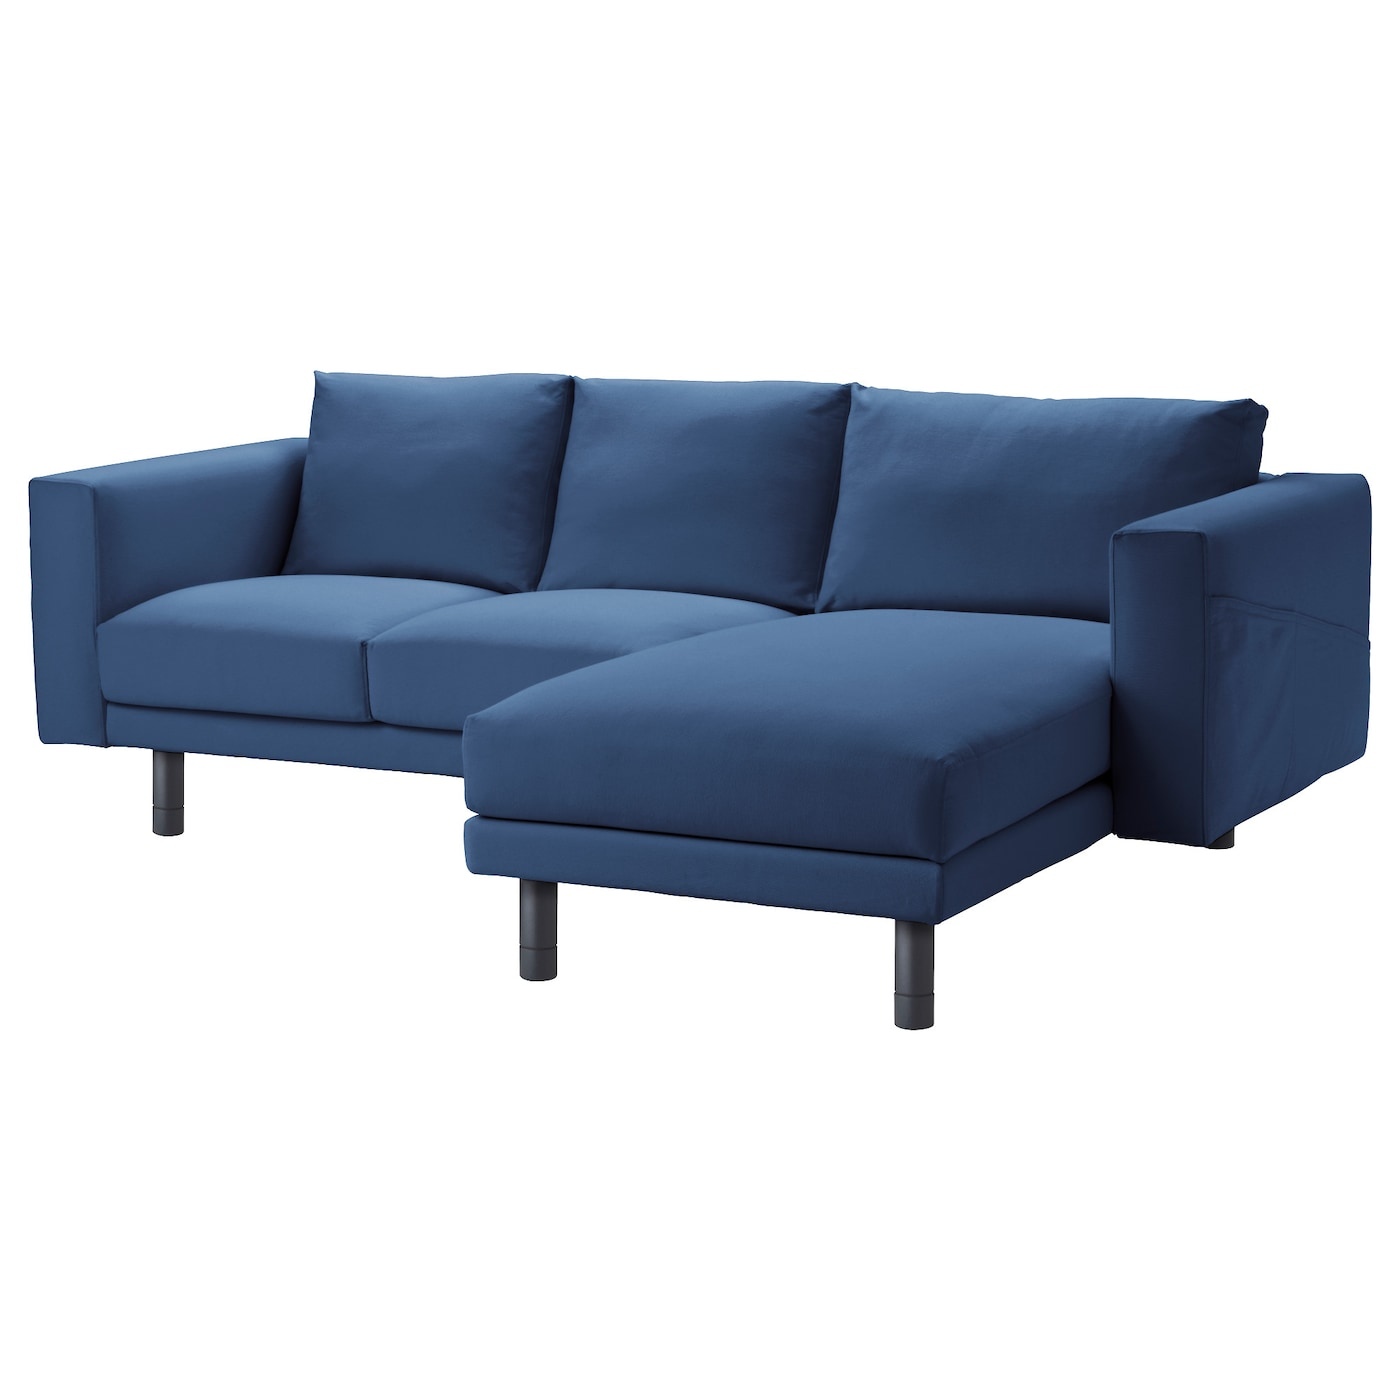 norsborg two seat sofa with chaise longue gr sbo dark blue grey ikea. Black Bedroom Furniture Sets. Home Design Ideas